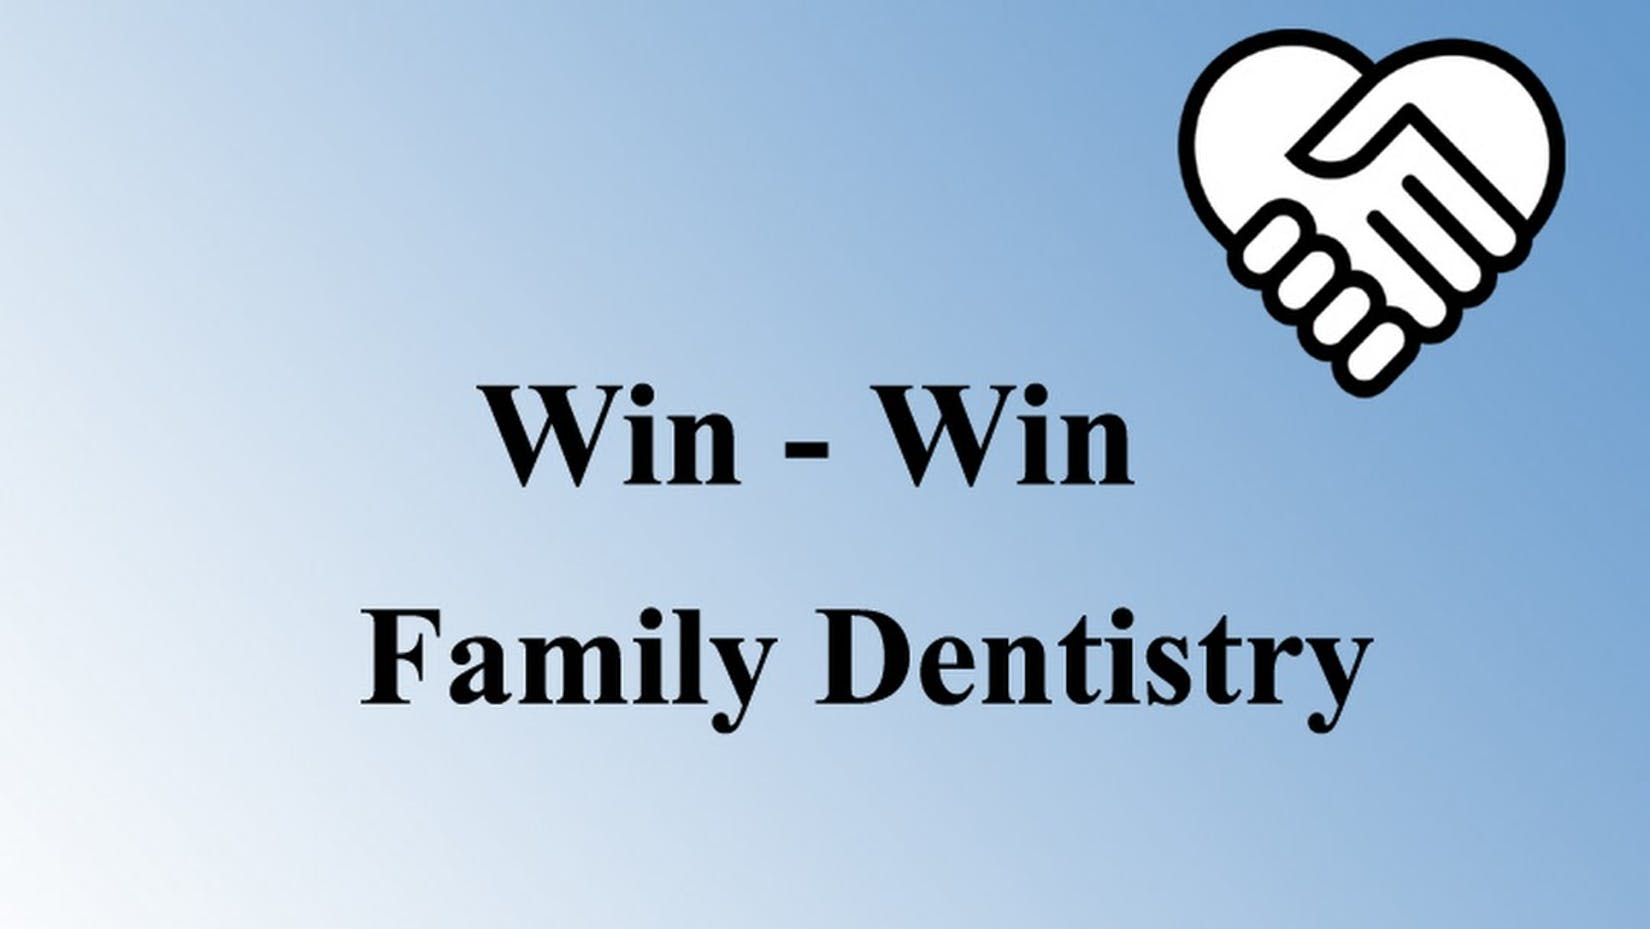 Win-Win Family Dentistry | Medical